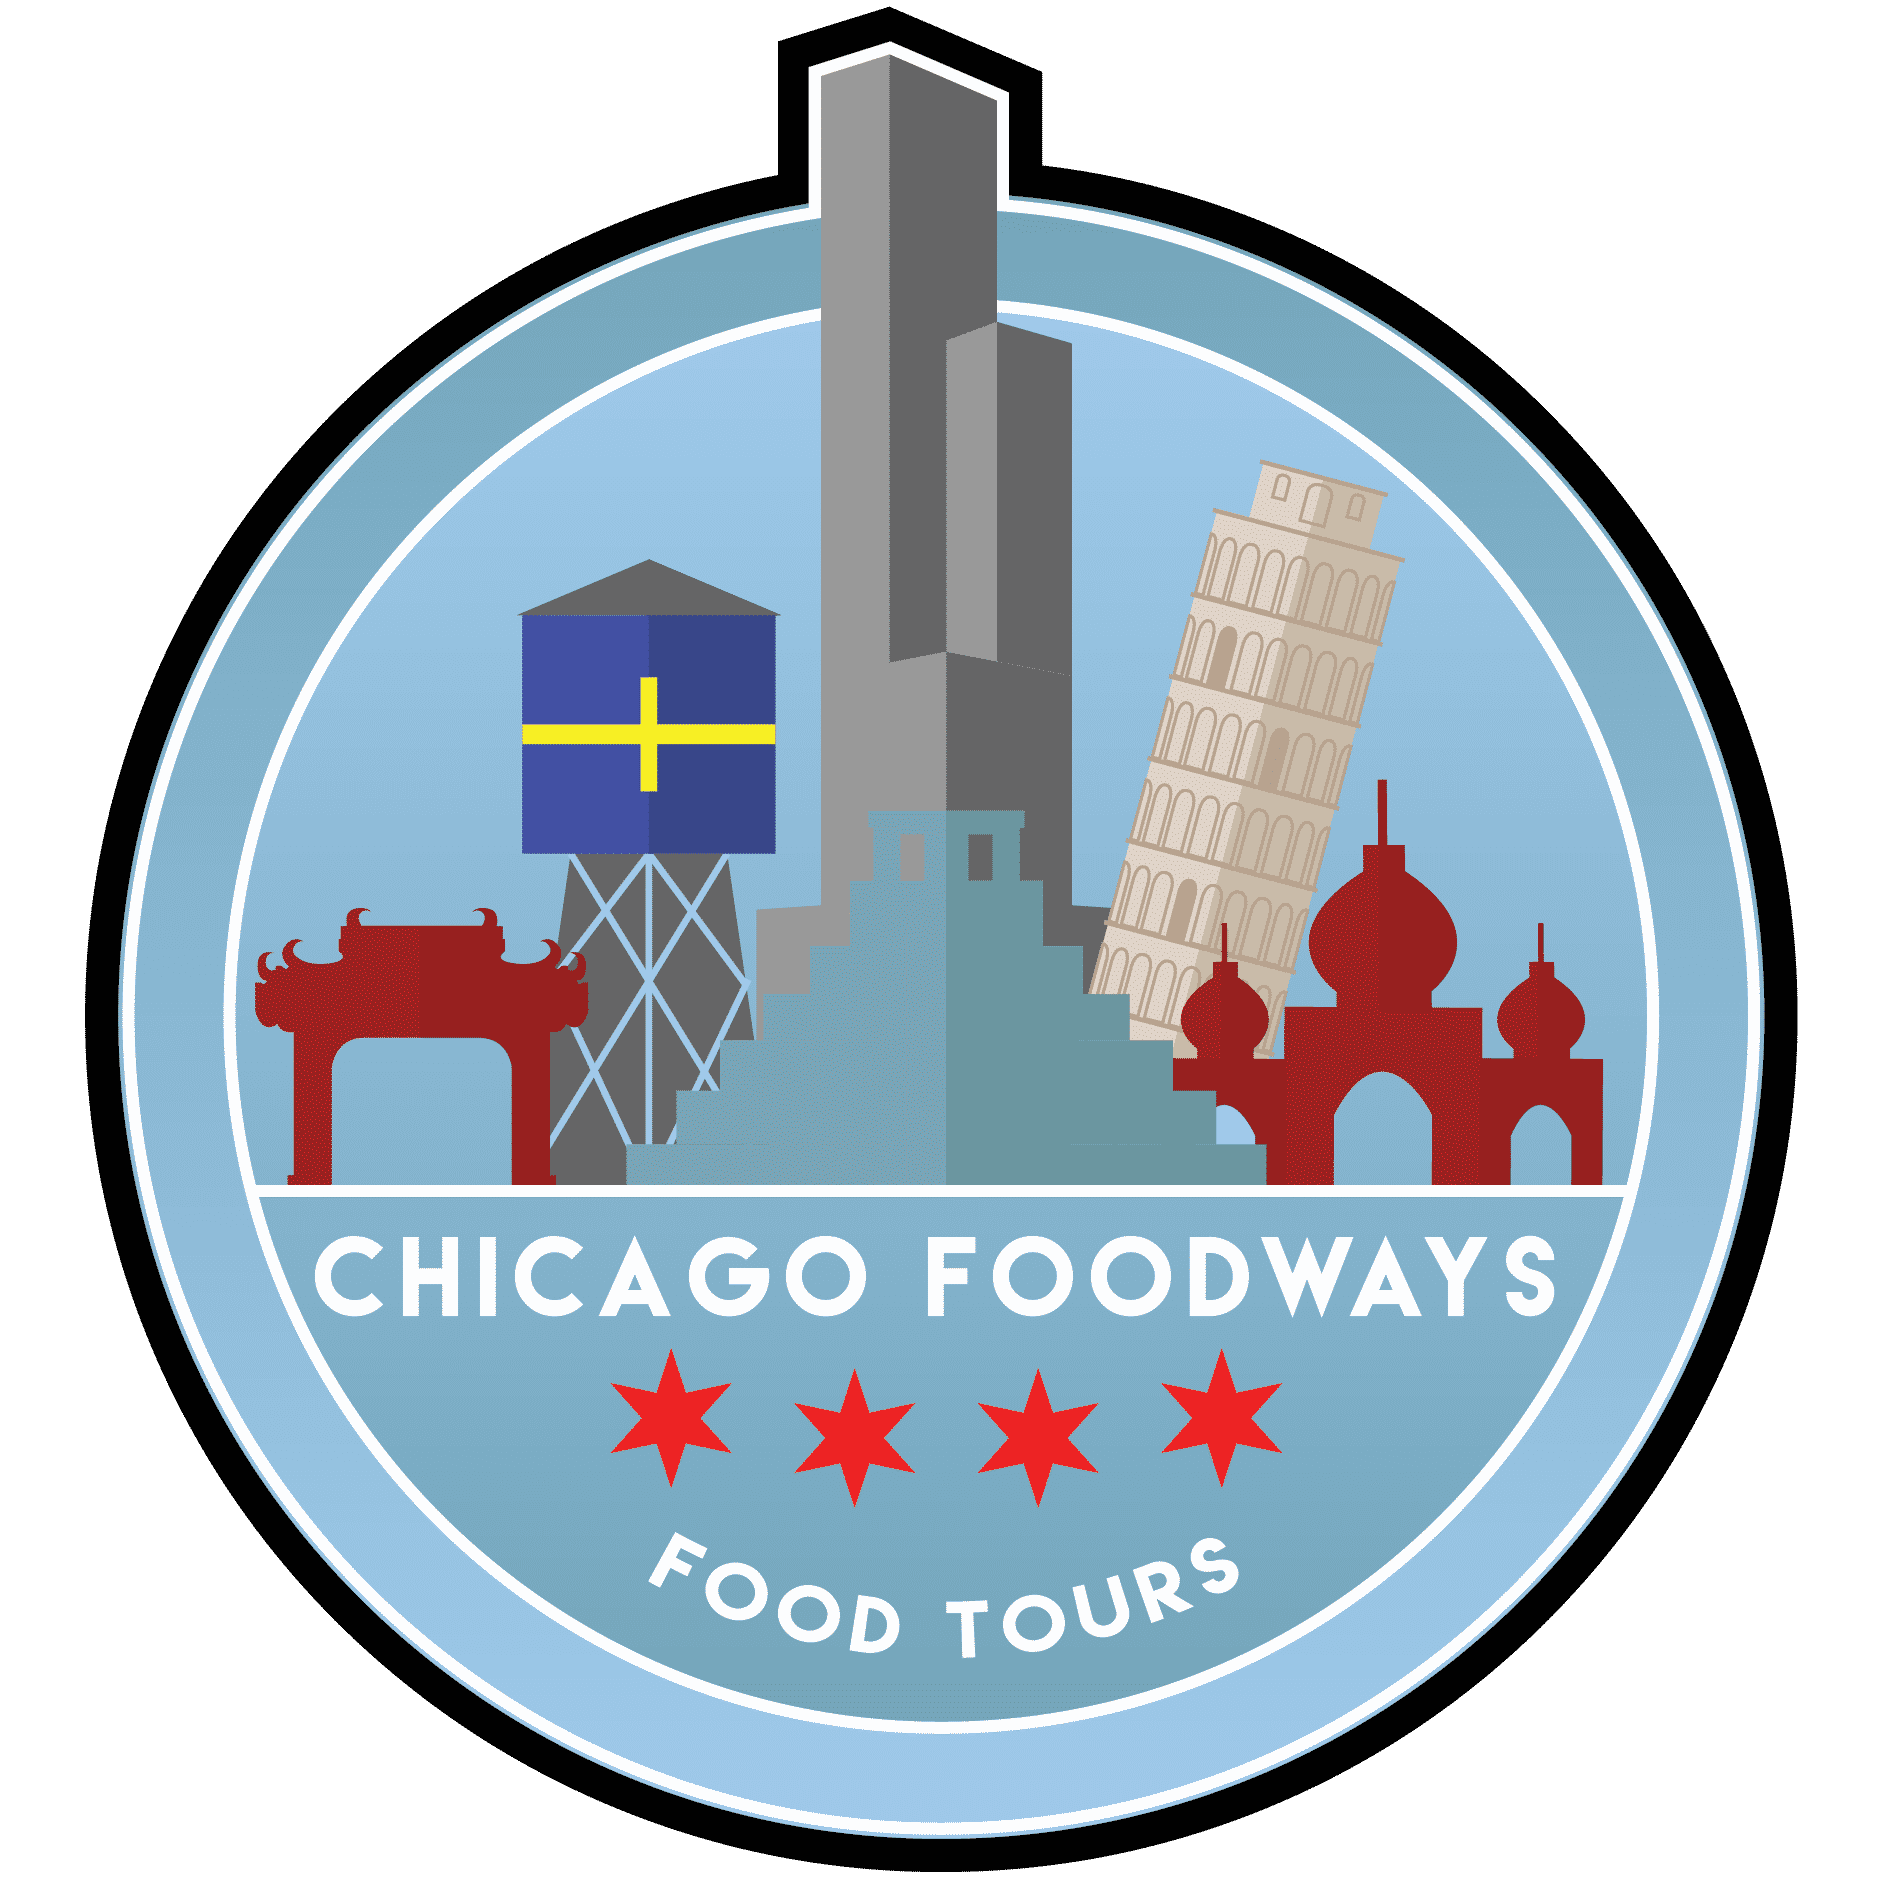 Clipart walking skip. Home chicago foodways tours